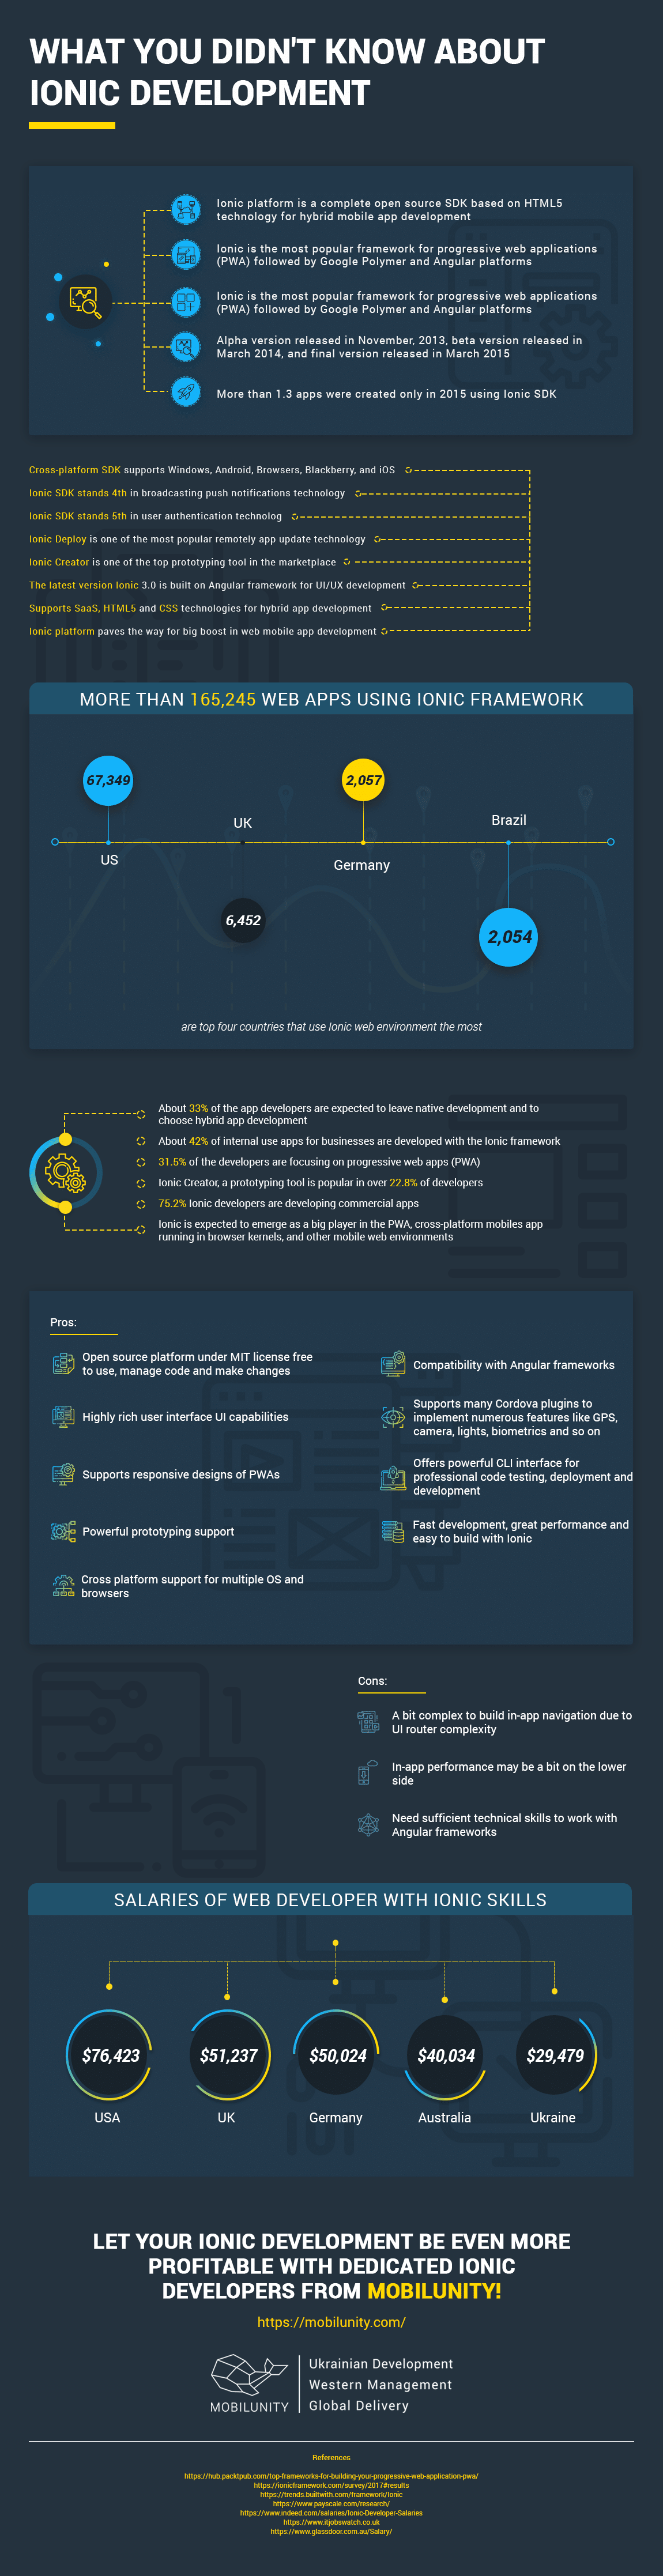 iOnic Development Infographic Article Image